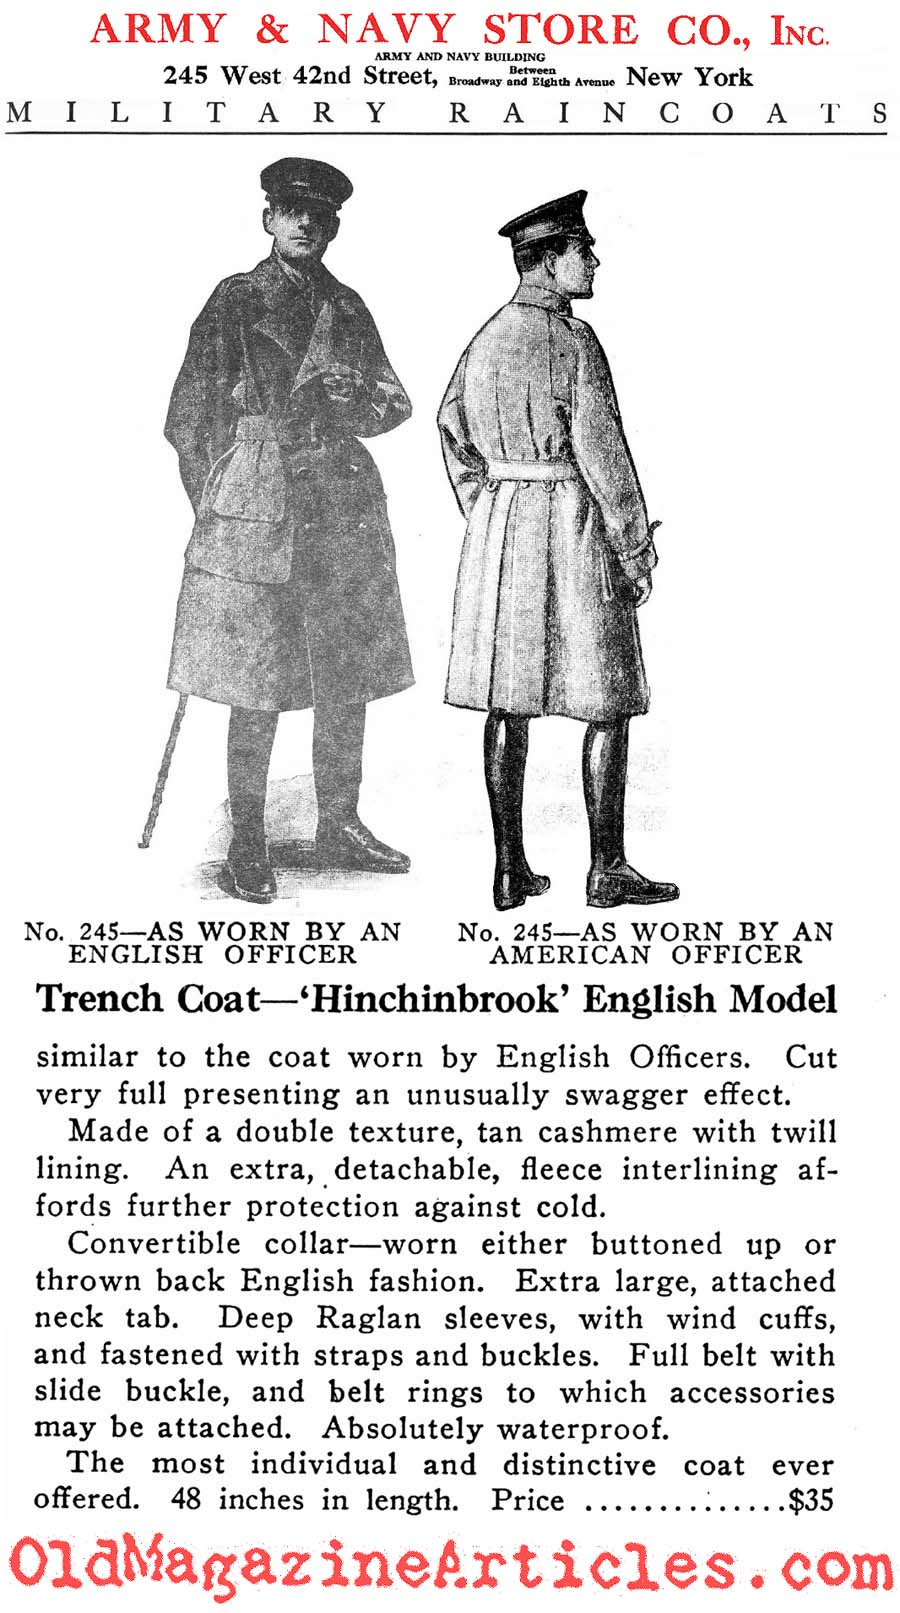 Trench Coat by Hitchinbrook  (Army and Navy Stores, 1918)